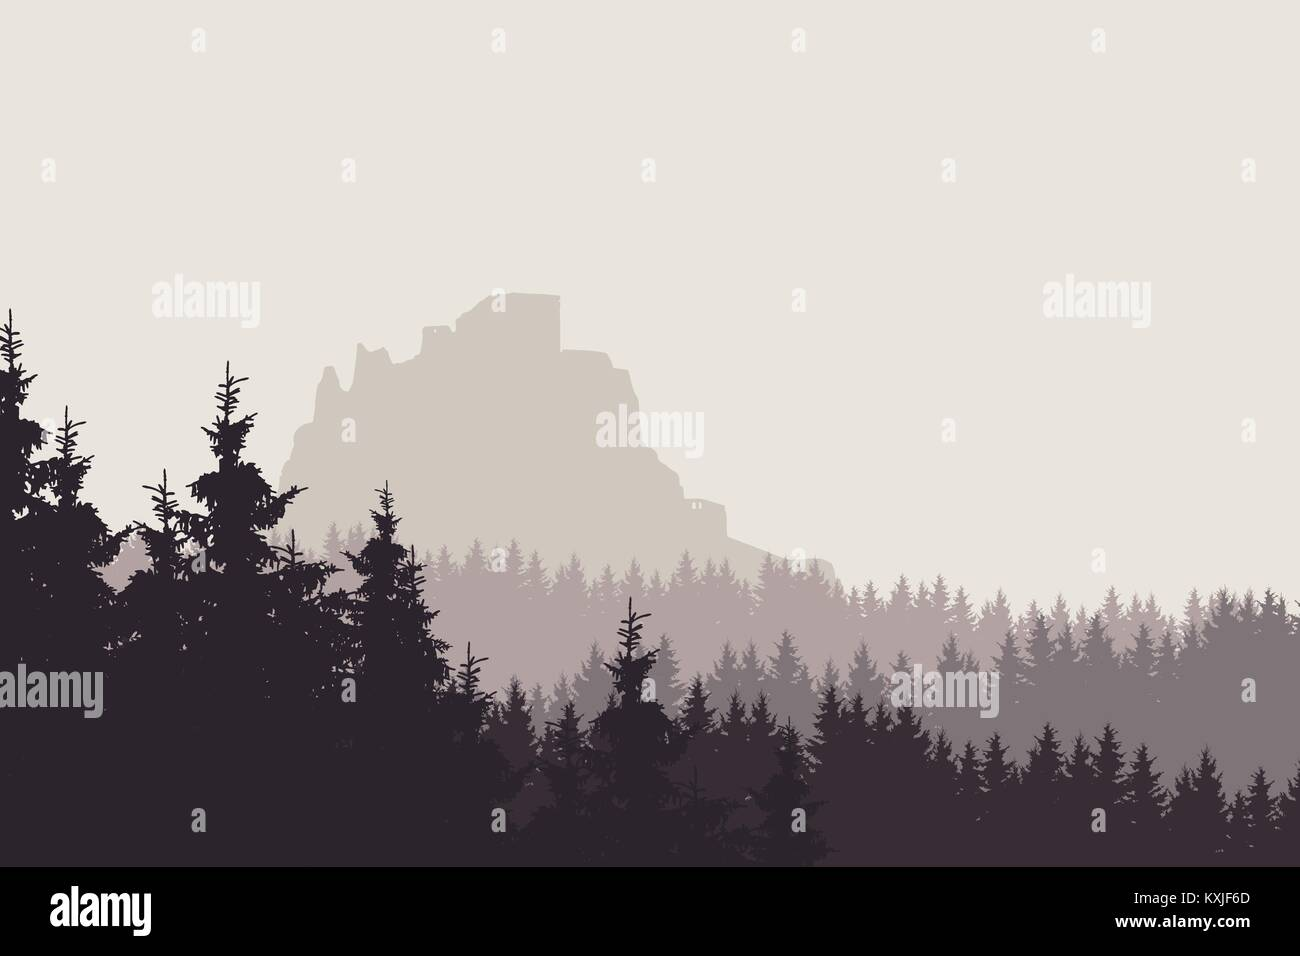 Vector illustration of a landscape with a forest and a ruin of a medieval castle - Stock Vector